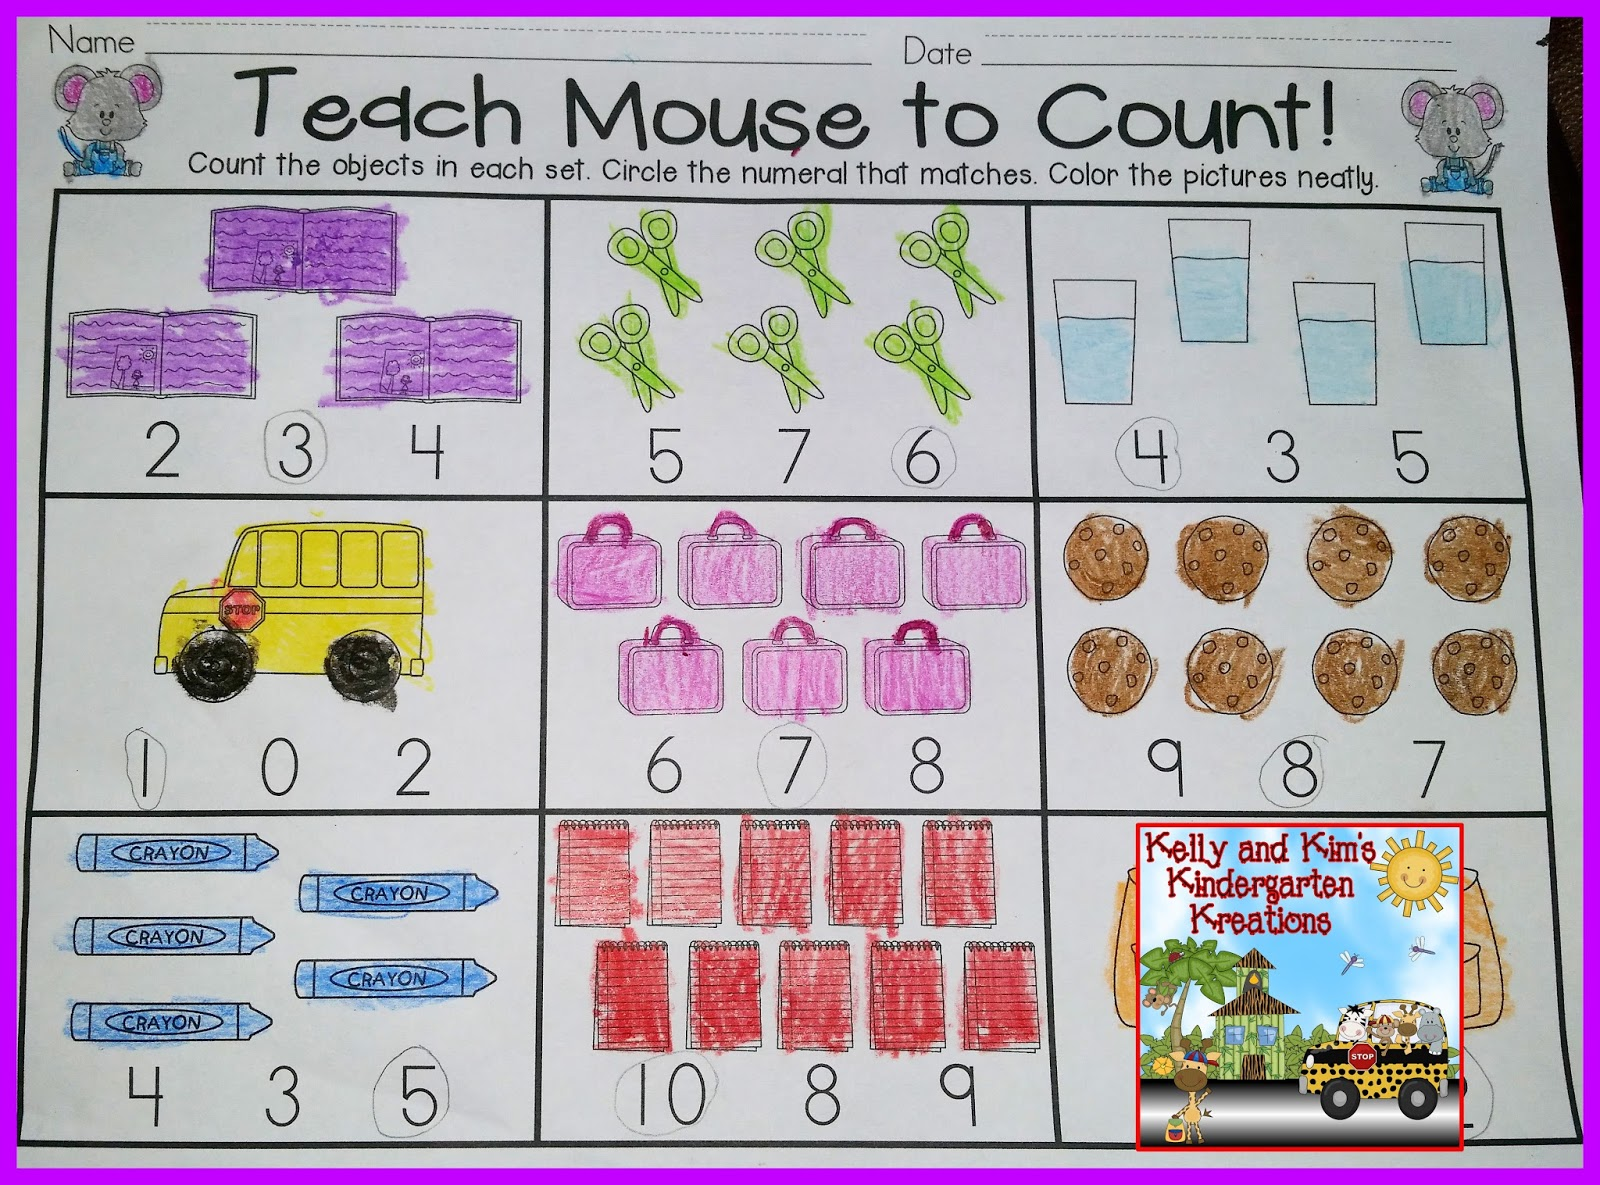 munchies for mouse is a great assessment for children to show what they have learned about writing numerals they will count the cookies in the ten frame